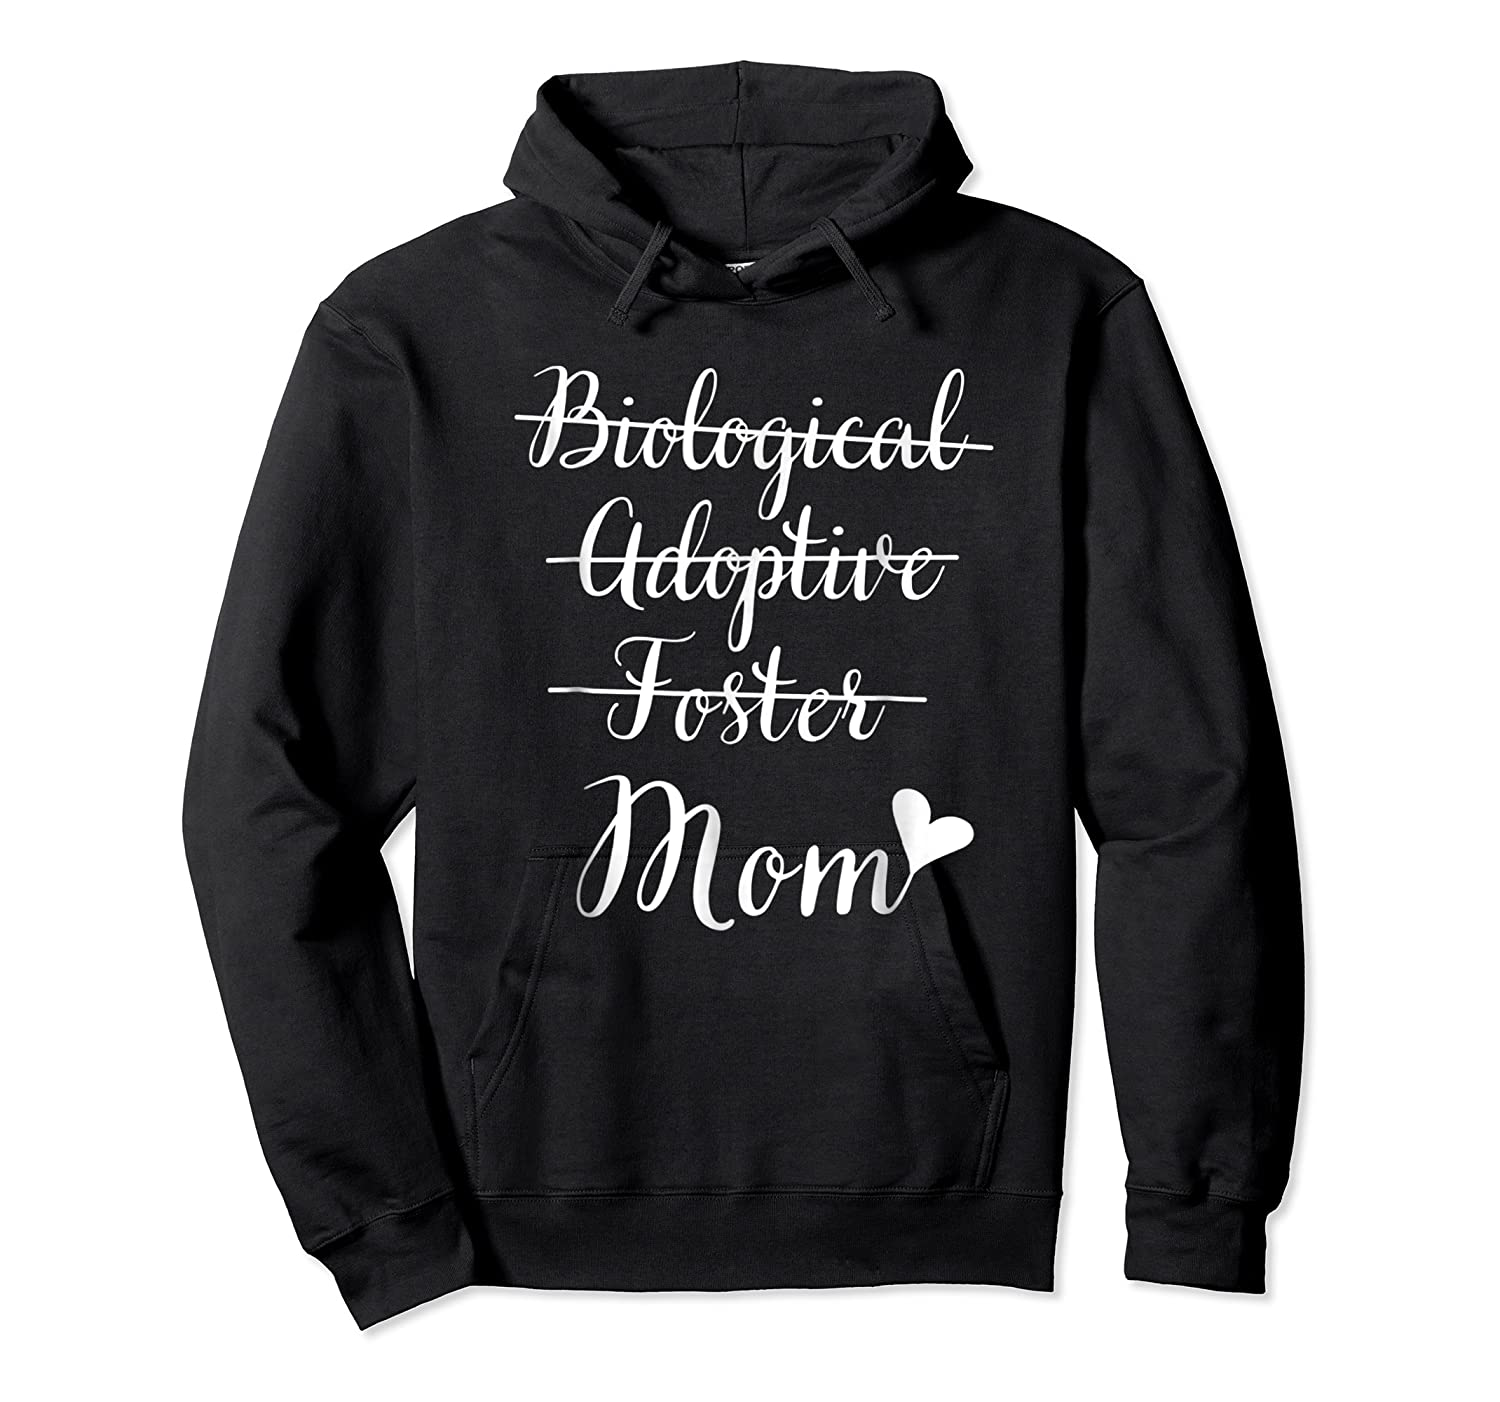 Not Biological Adoptive Foster Just Mom Mothers Day Shirts Unisex Pullover Hoodie